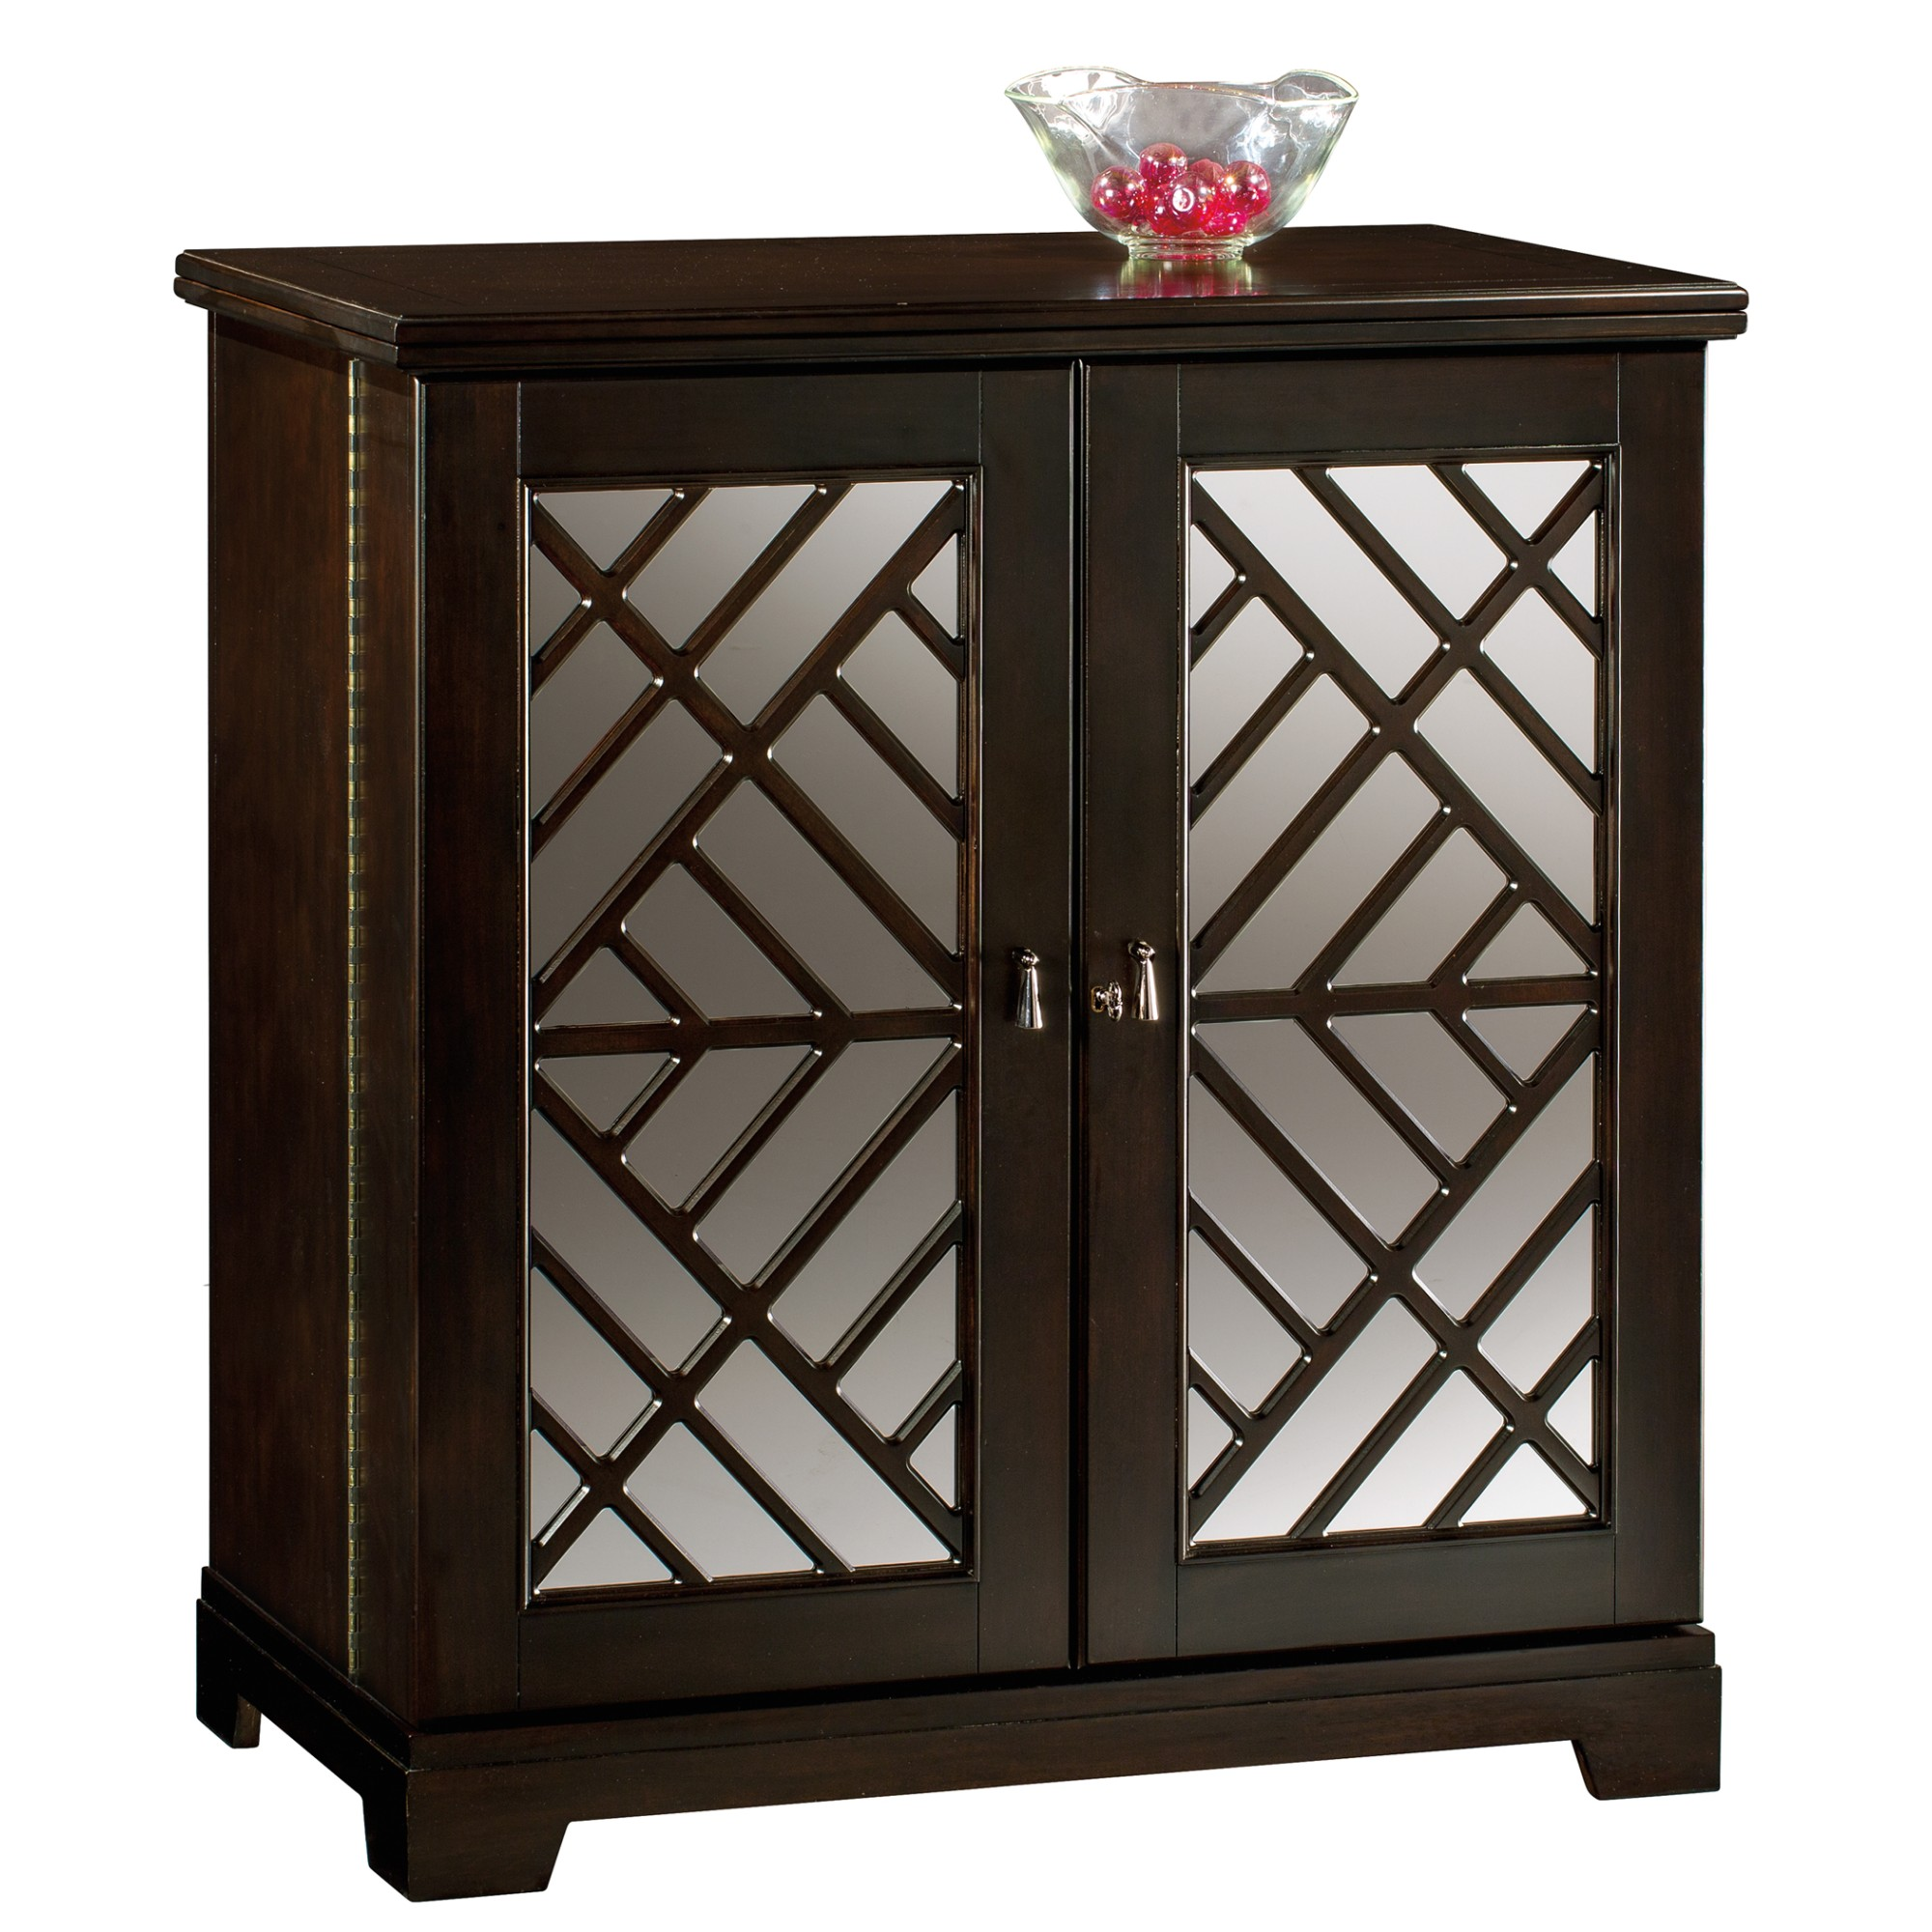 Image for 695-150 Barolo Console Wine & Bar Console from Howard Miller Official Website